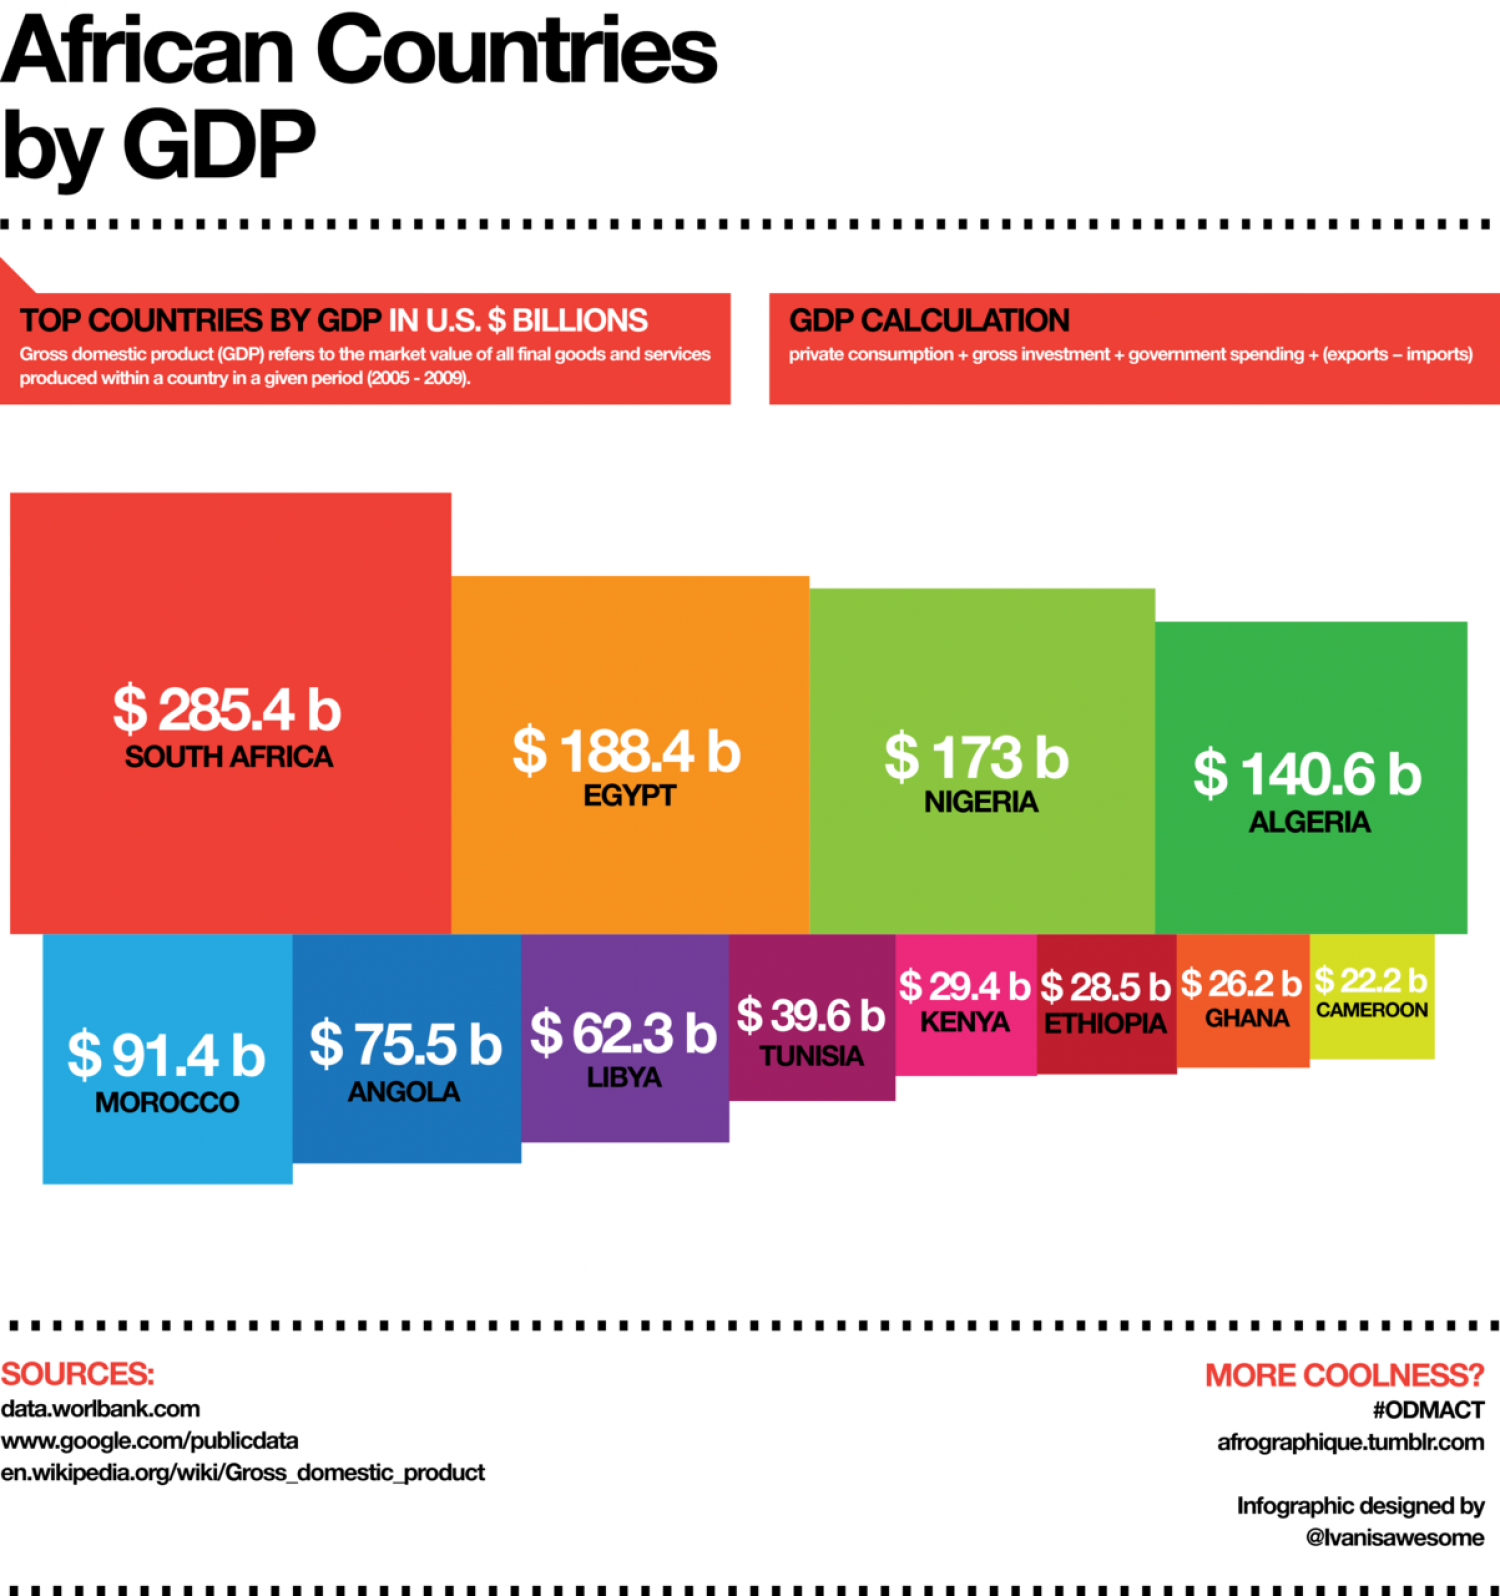 African Countries by GDP Infographic